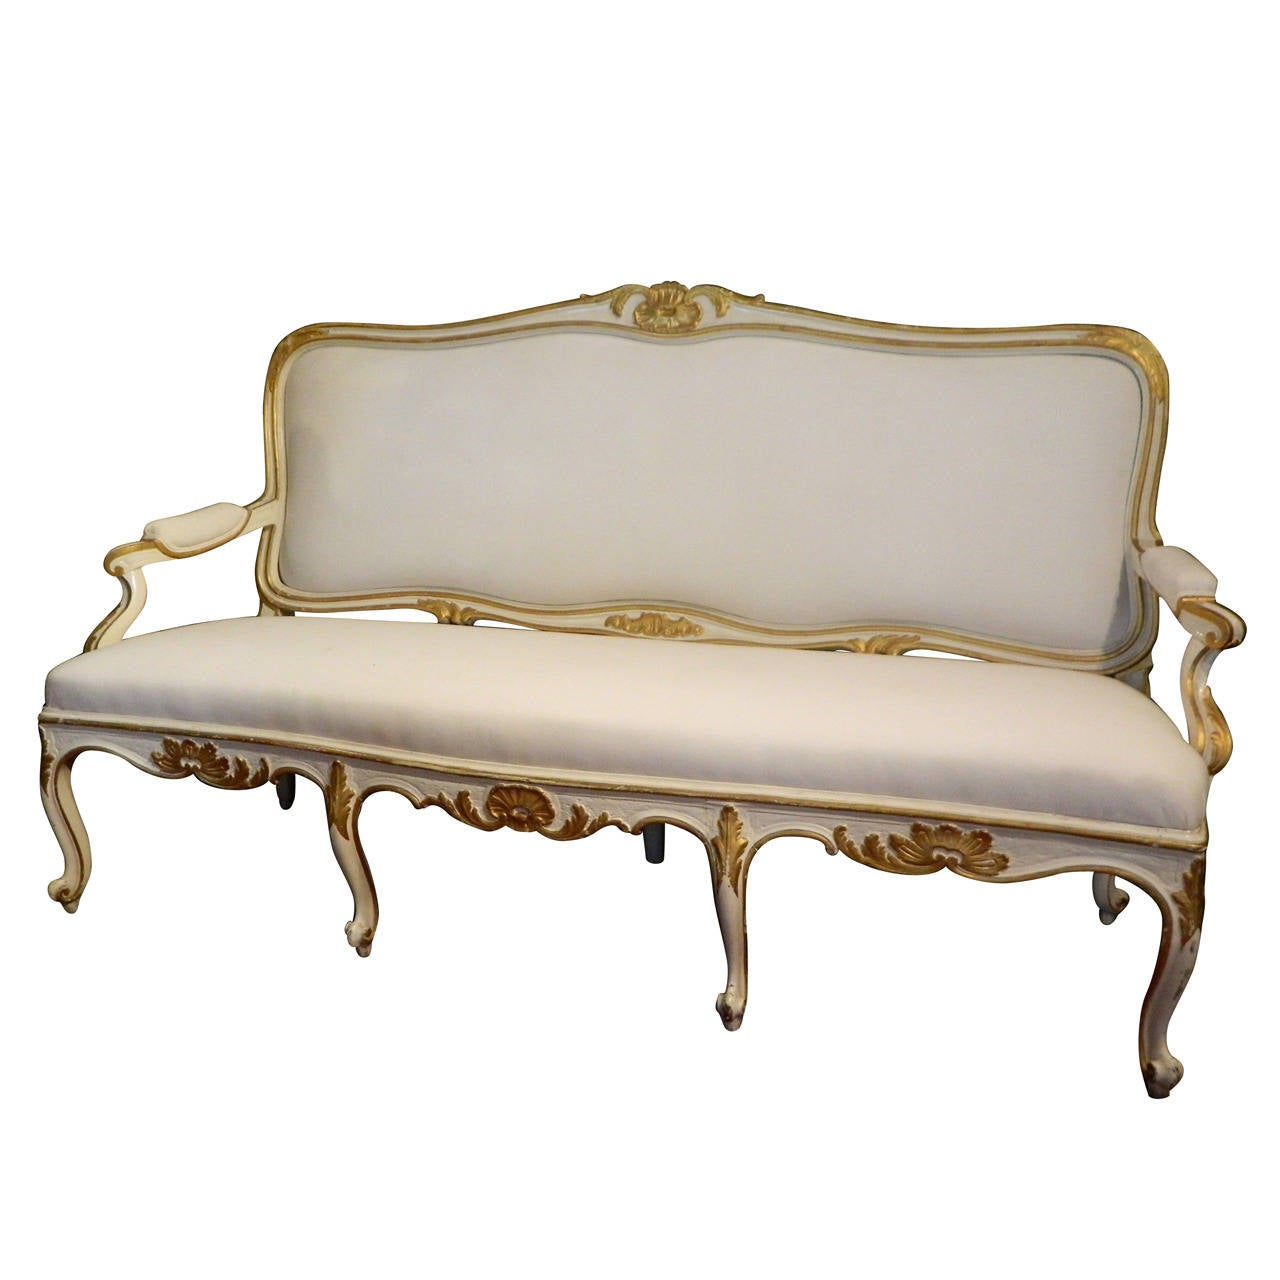 Canape Sofa Gustavian Painted And Parcel Gilt Canape Or Sofa 19th